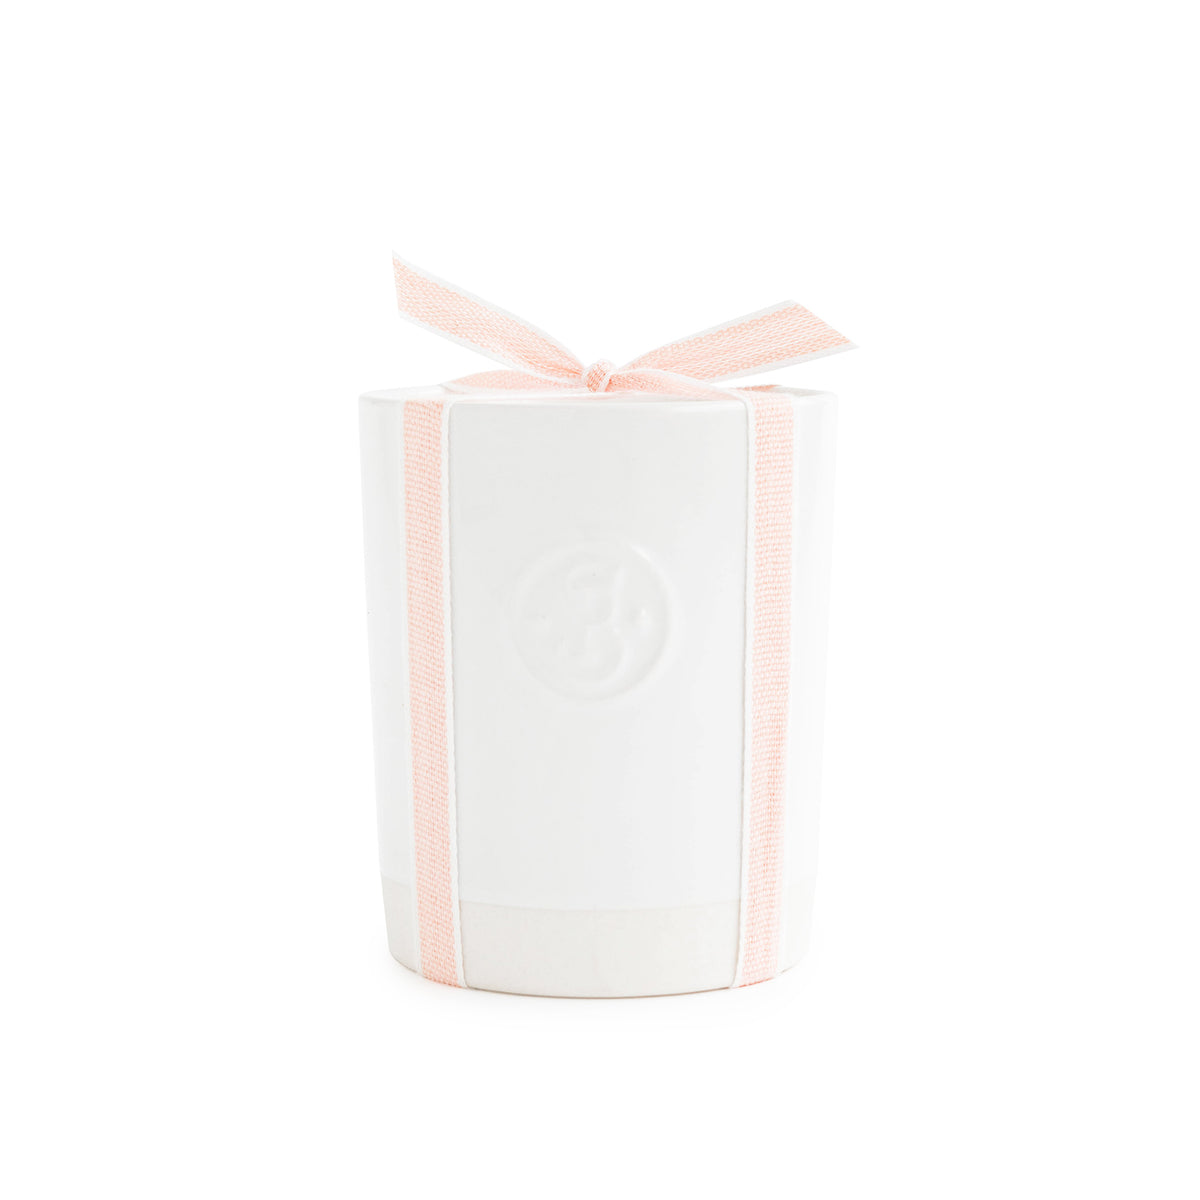 Ceramic Candle, Pale Pink Petal